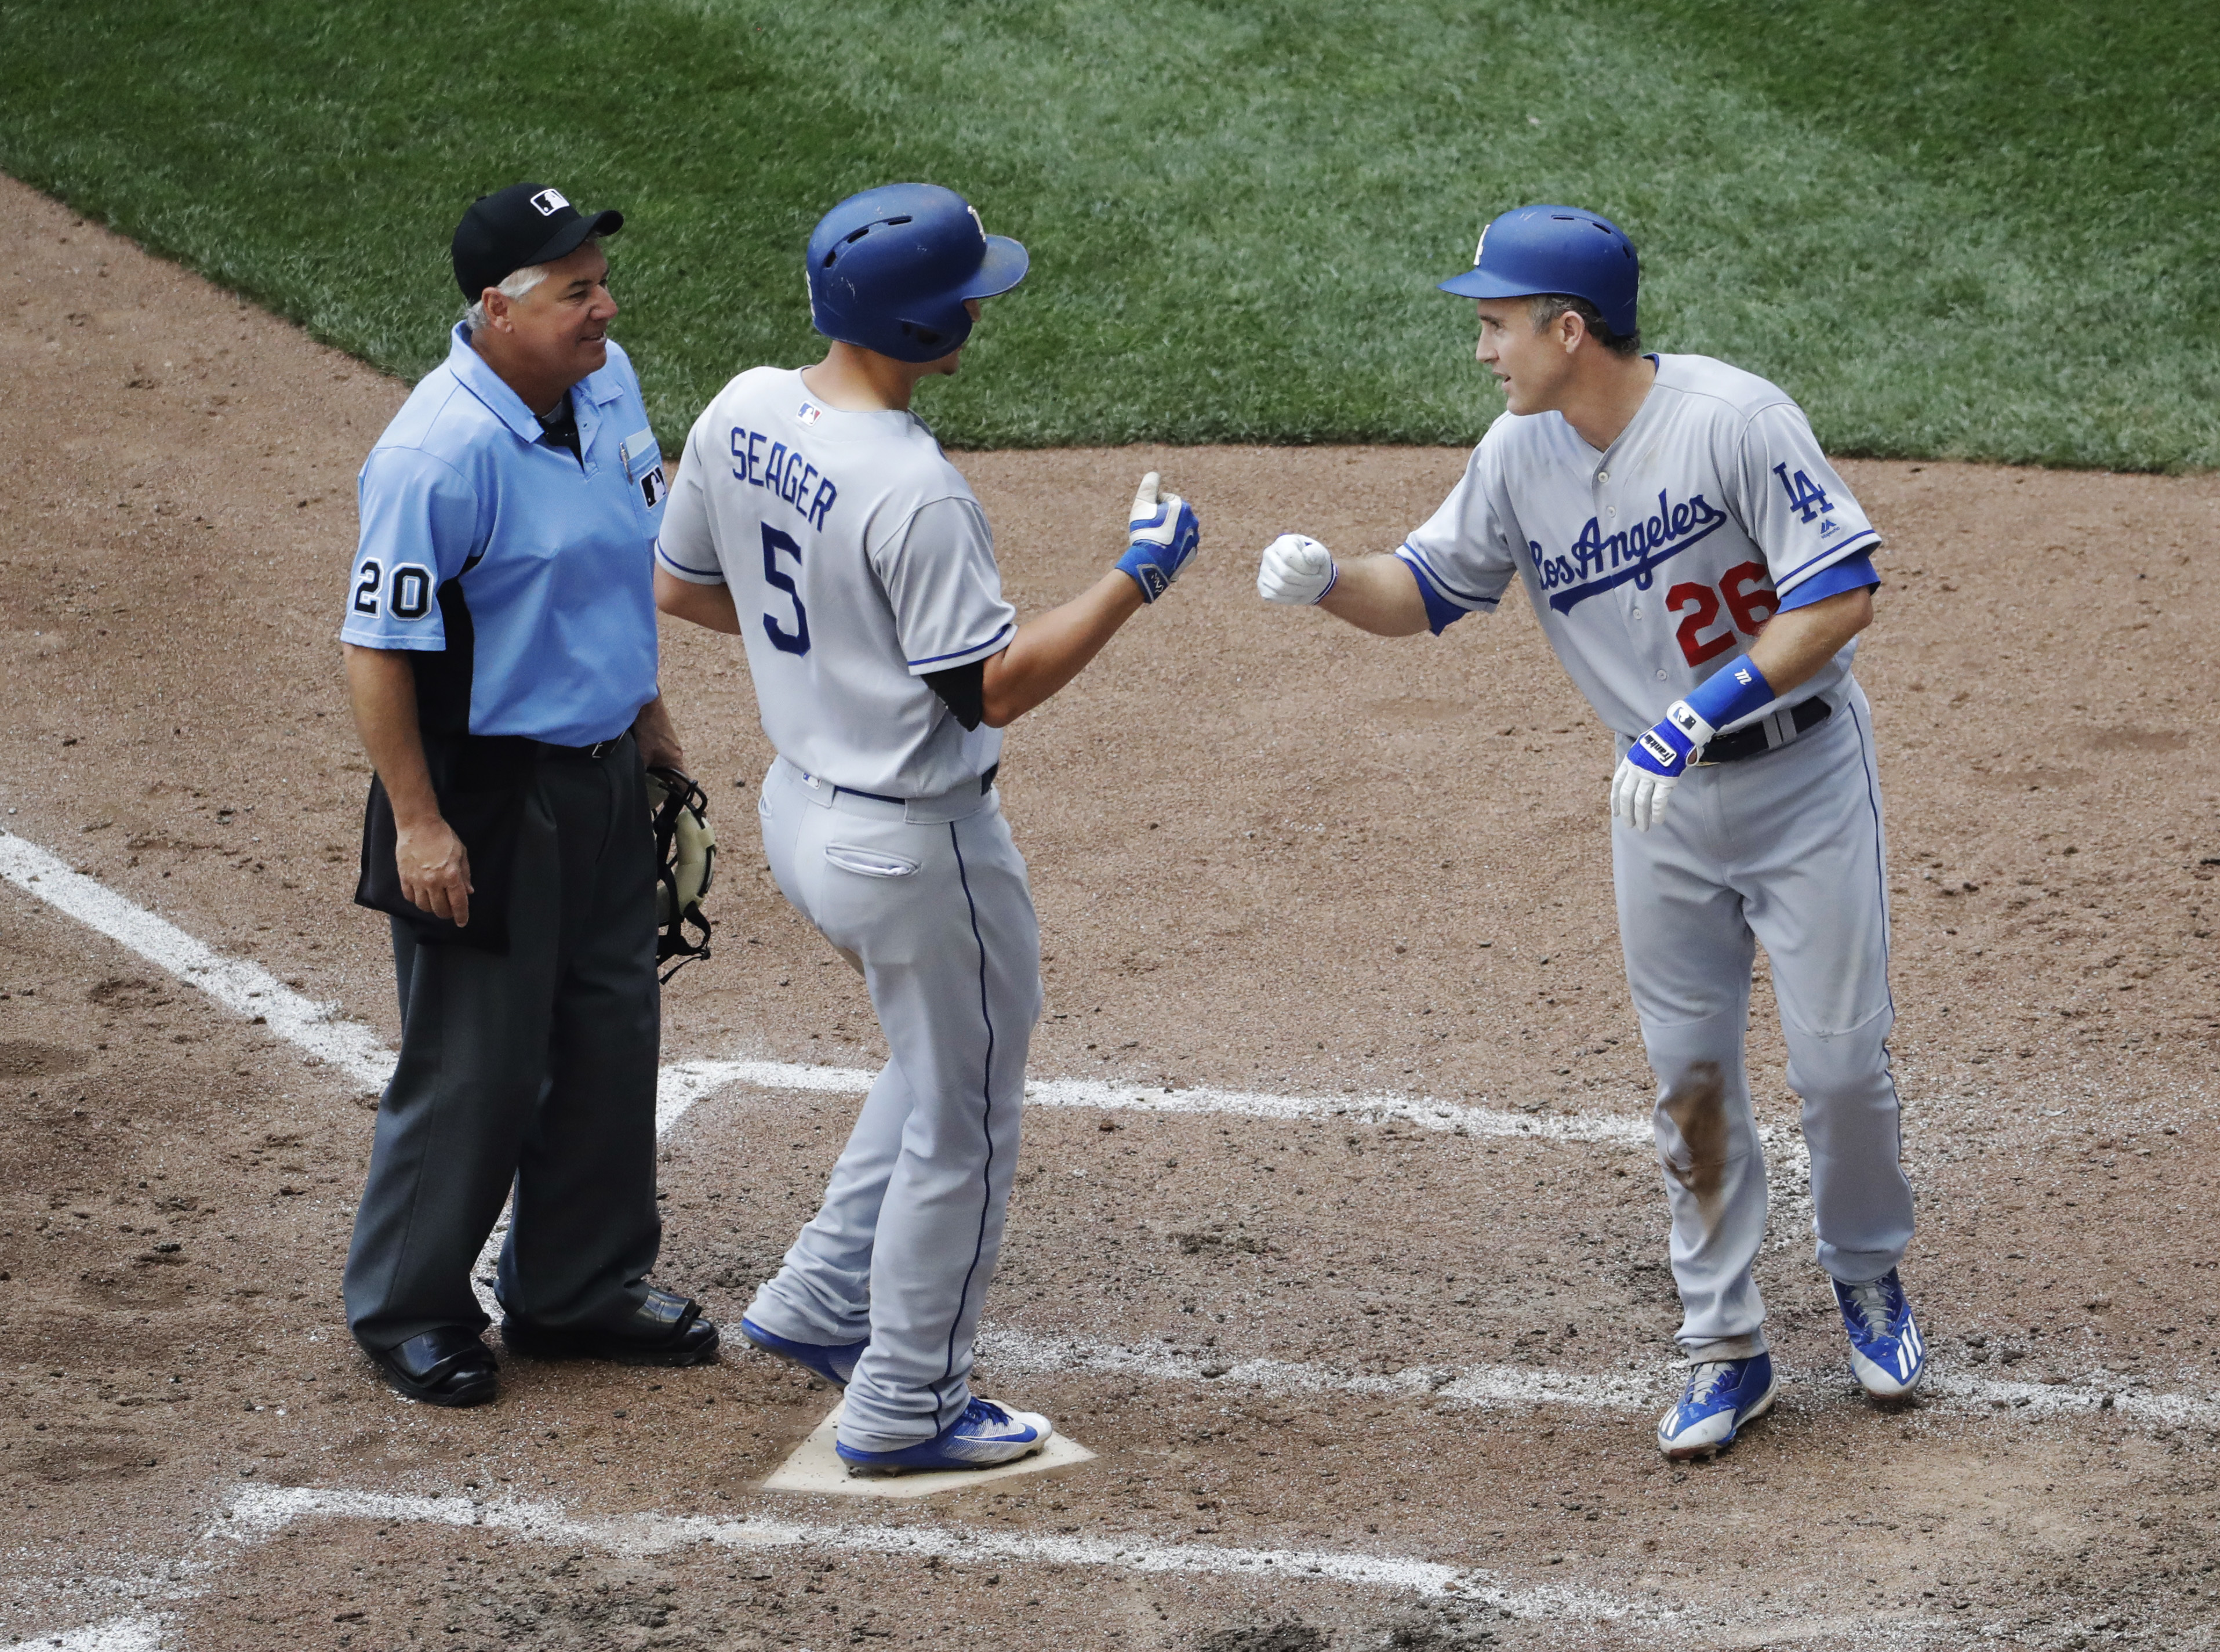 Los Angeles Dodgers' Corey Seager is congratulated by Chase Utley after hitting a two-run home run during the fifth inning of a baseball game against the Milwaukee Brewers Thursday, June 30, 2016, in Milwaukee. (AP Photo/Morry Gash)